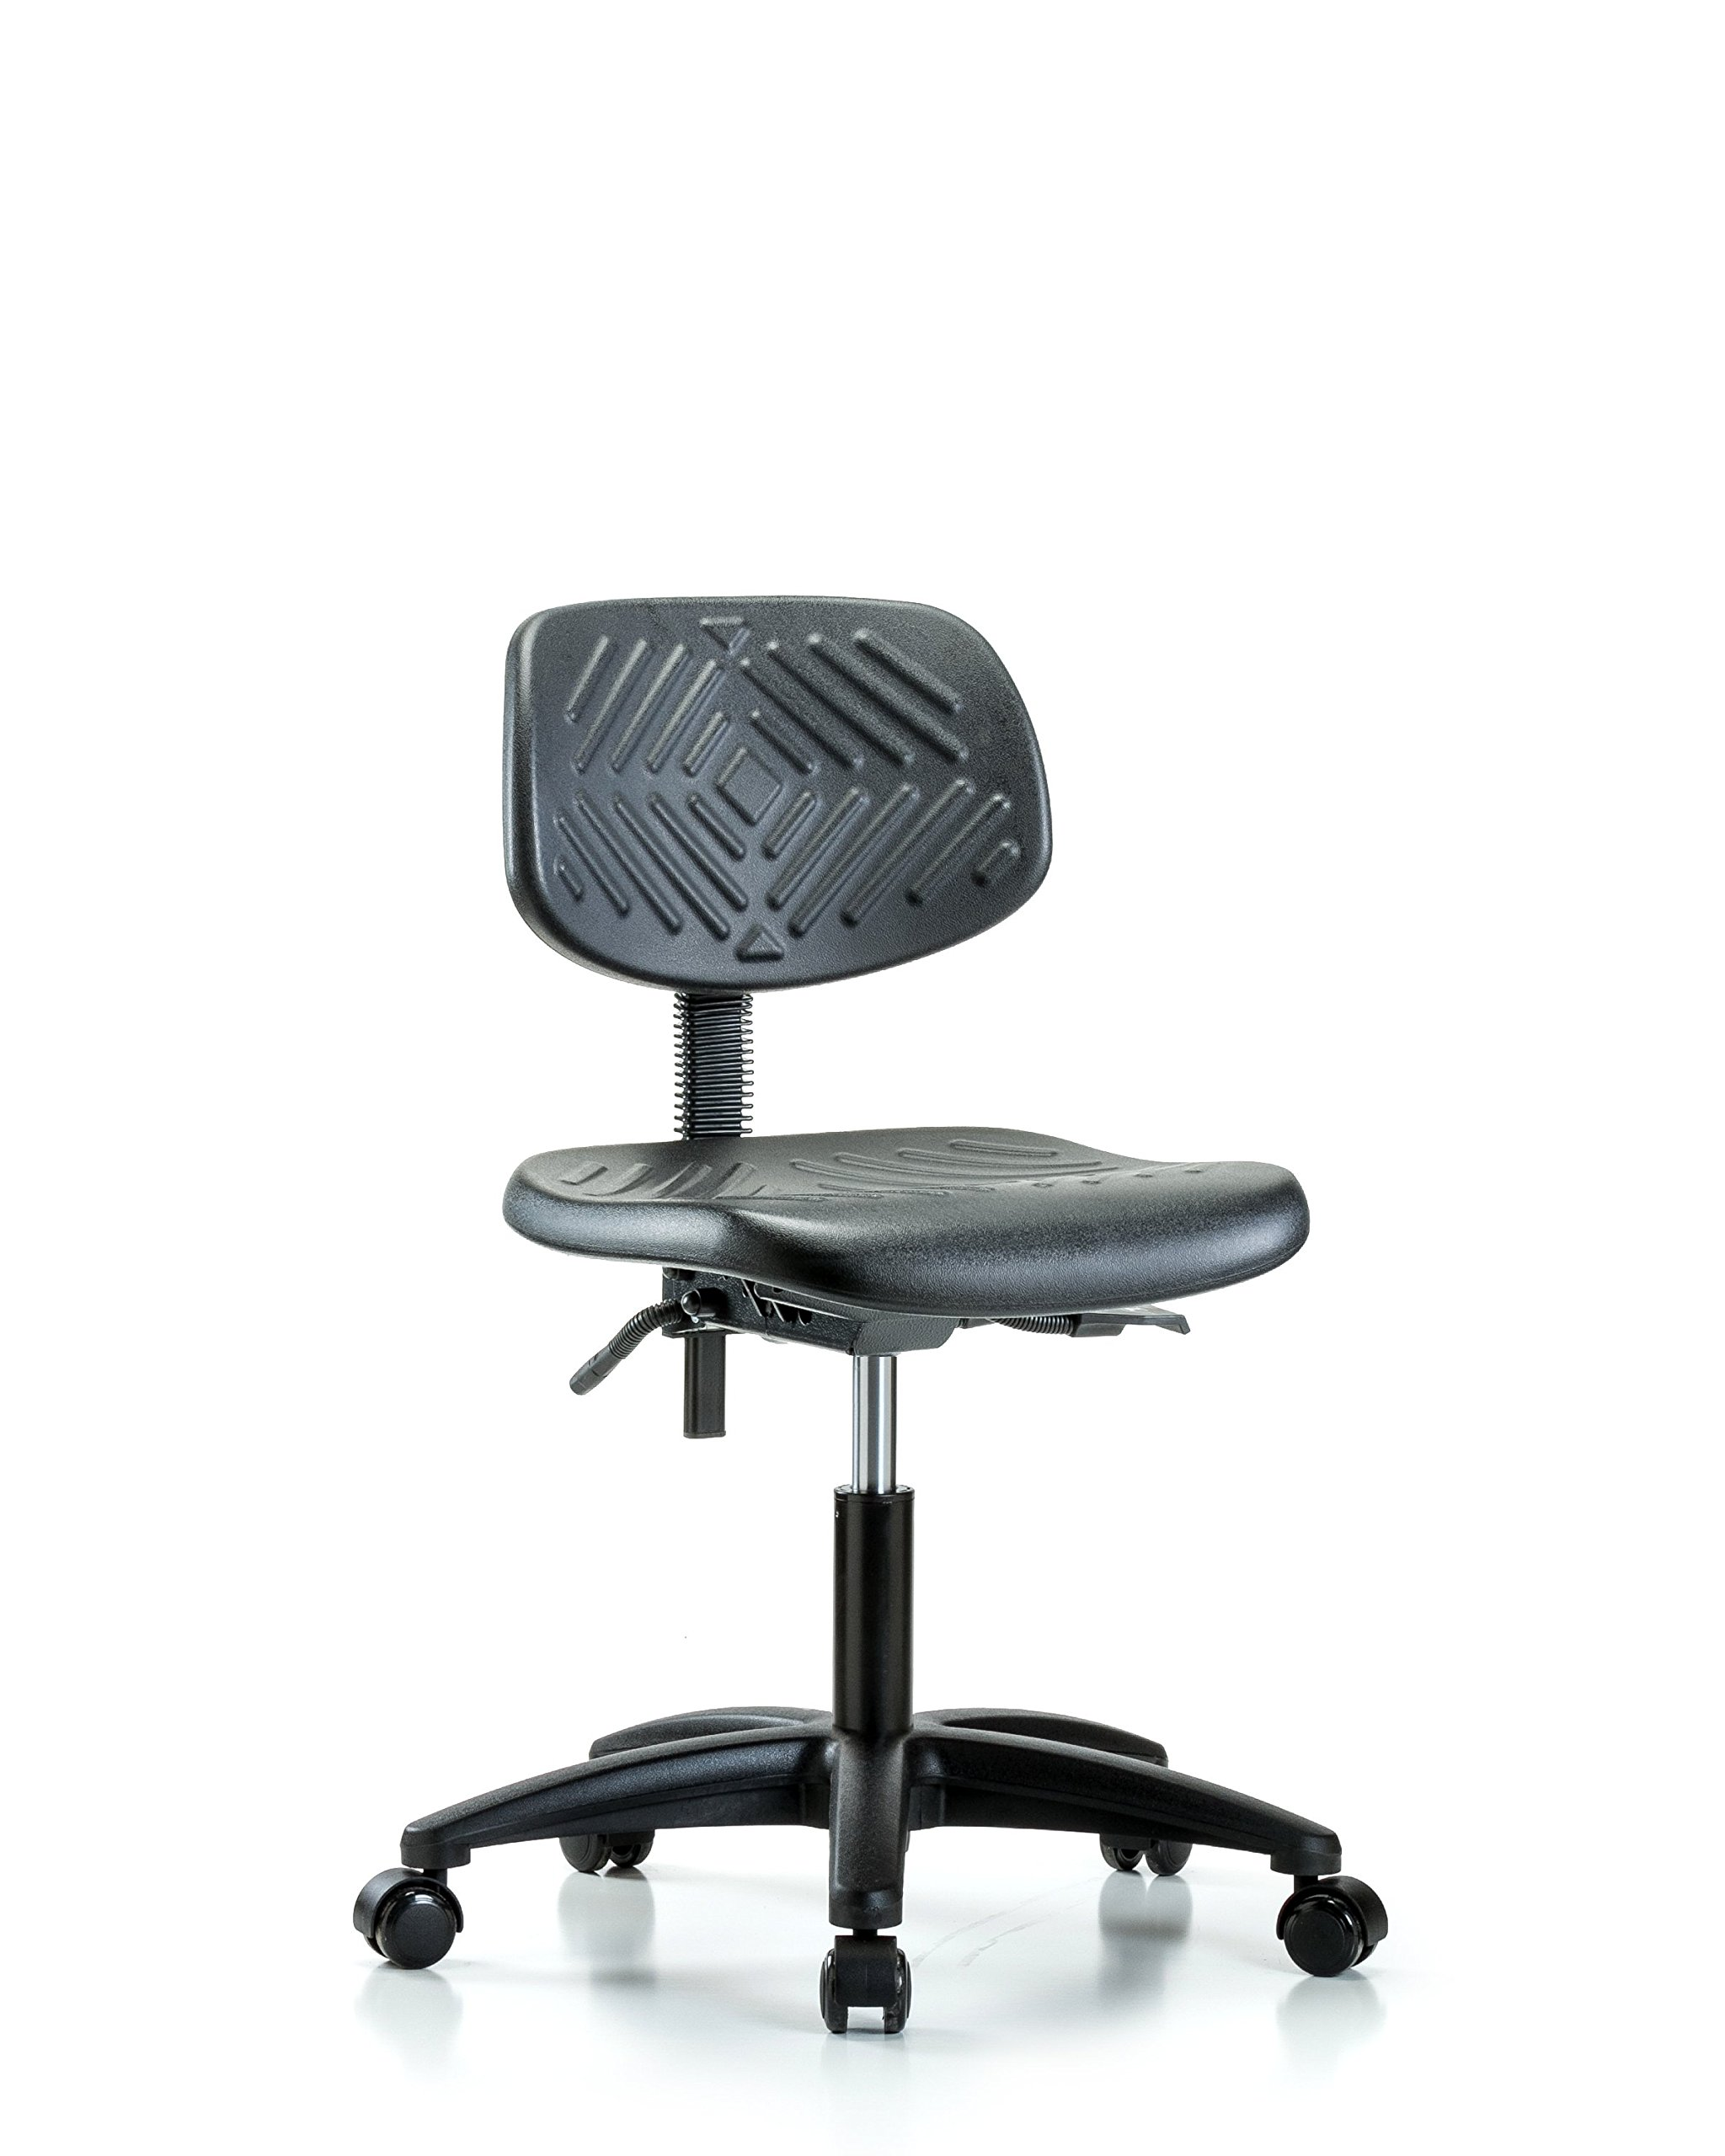 Heavy Duty Industrial Chair for Labs or Class Rooms with Wheels - Desk Height